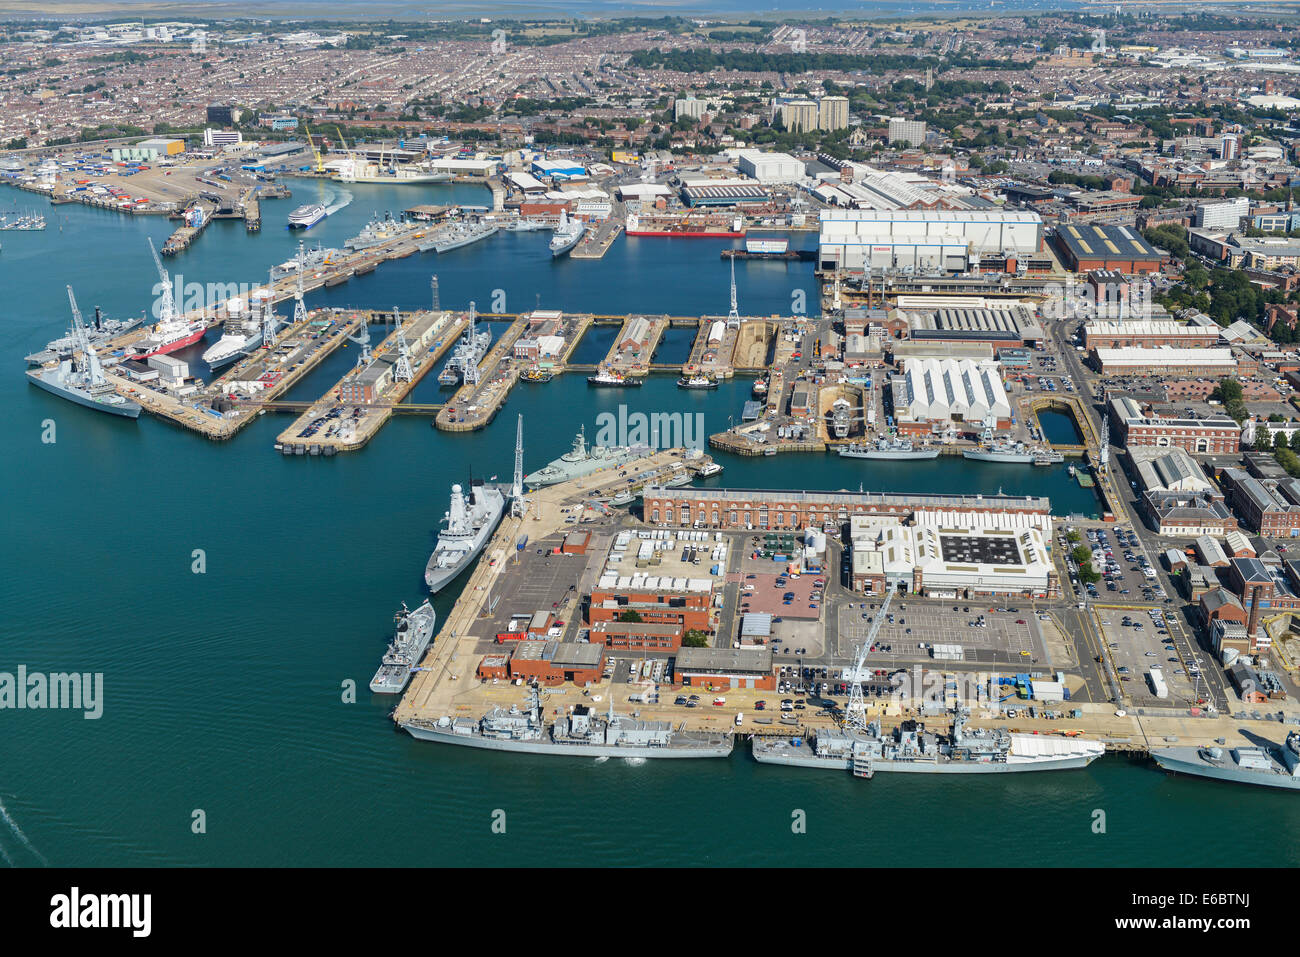 An aerial view of the Naval Dockyard in Portsmouth, Hampshire - Stock Image